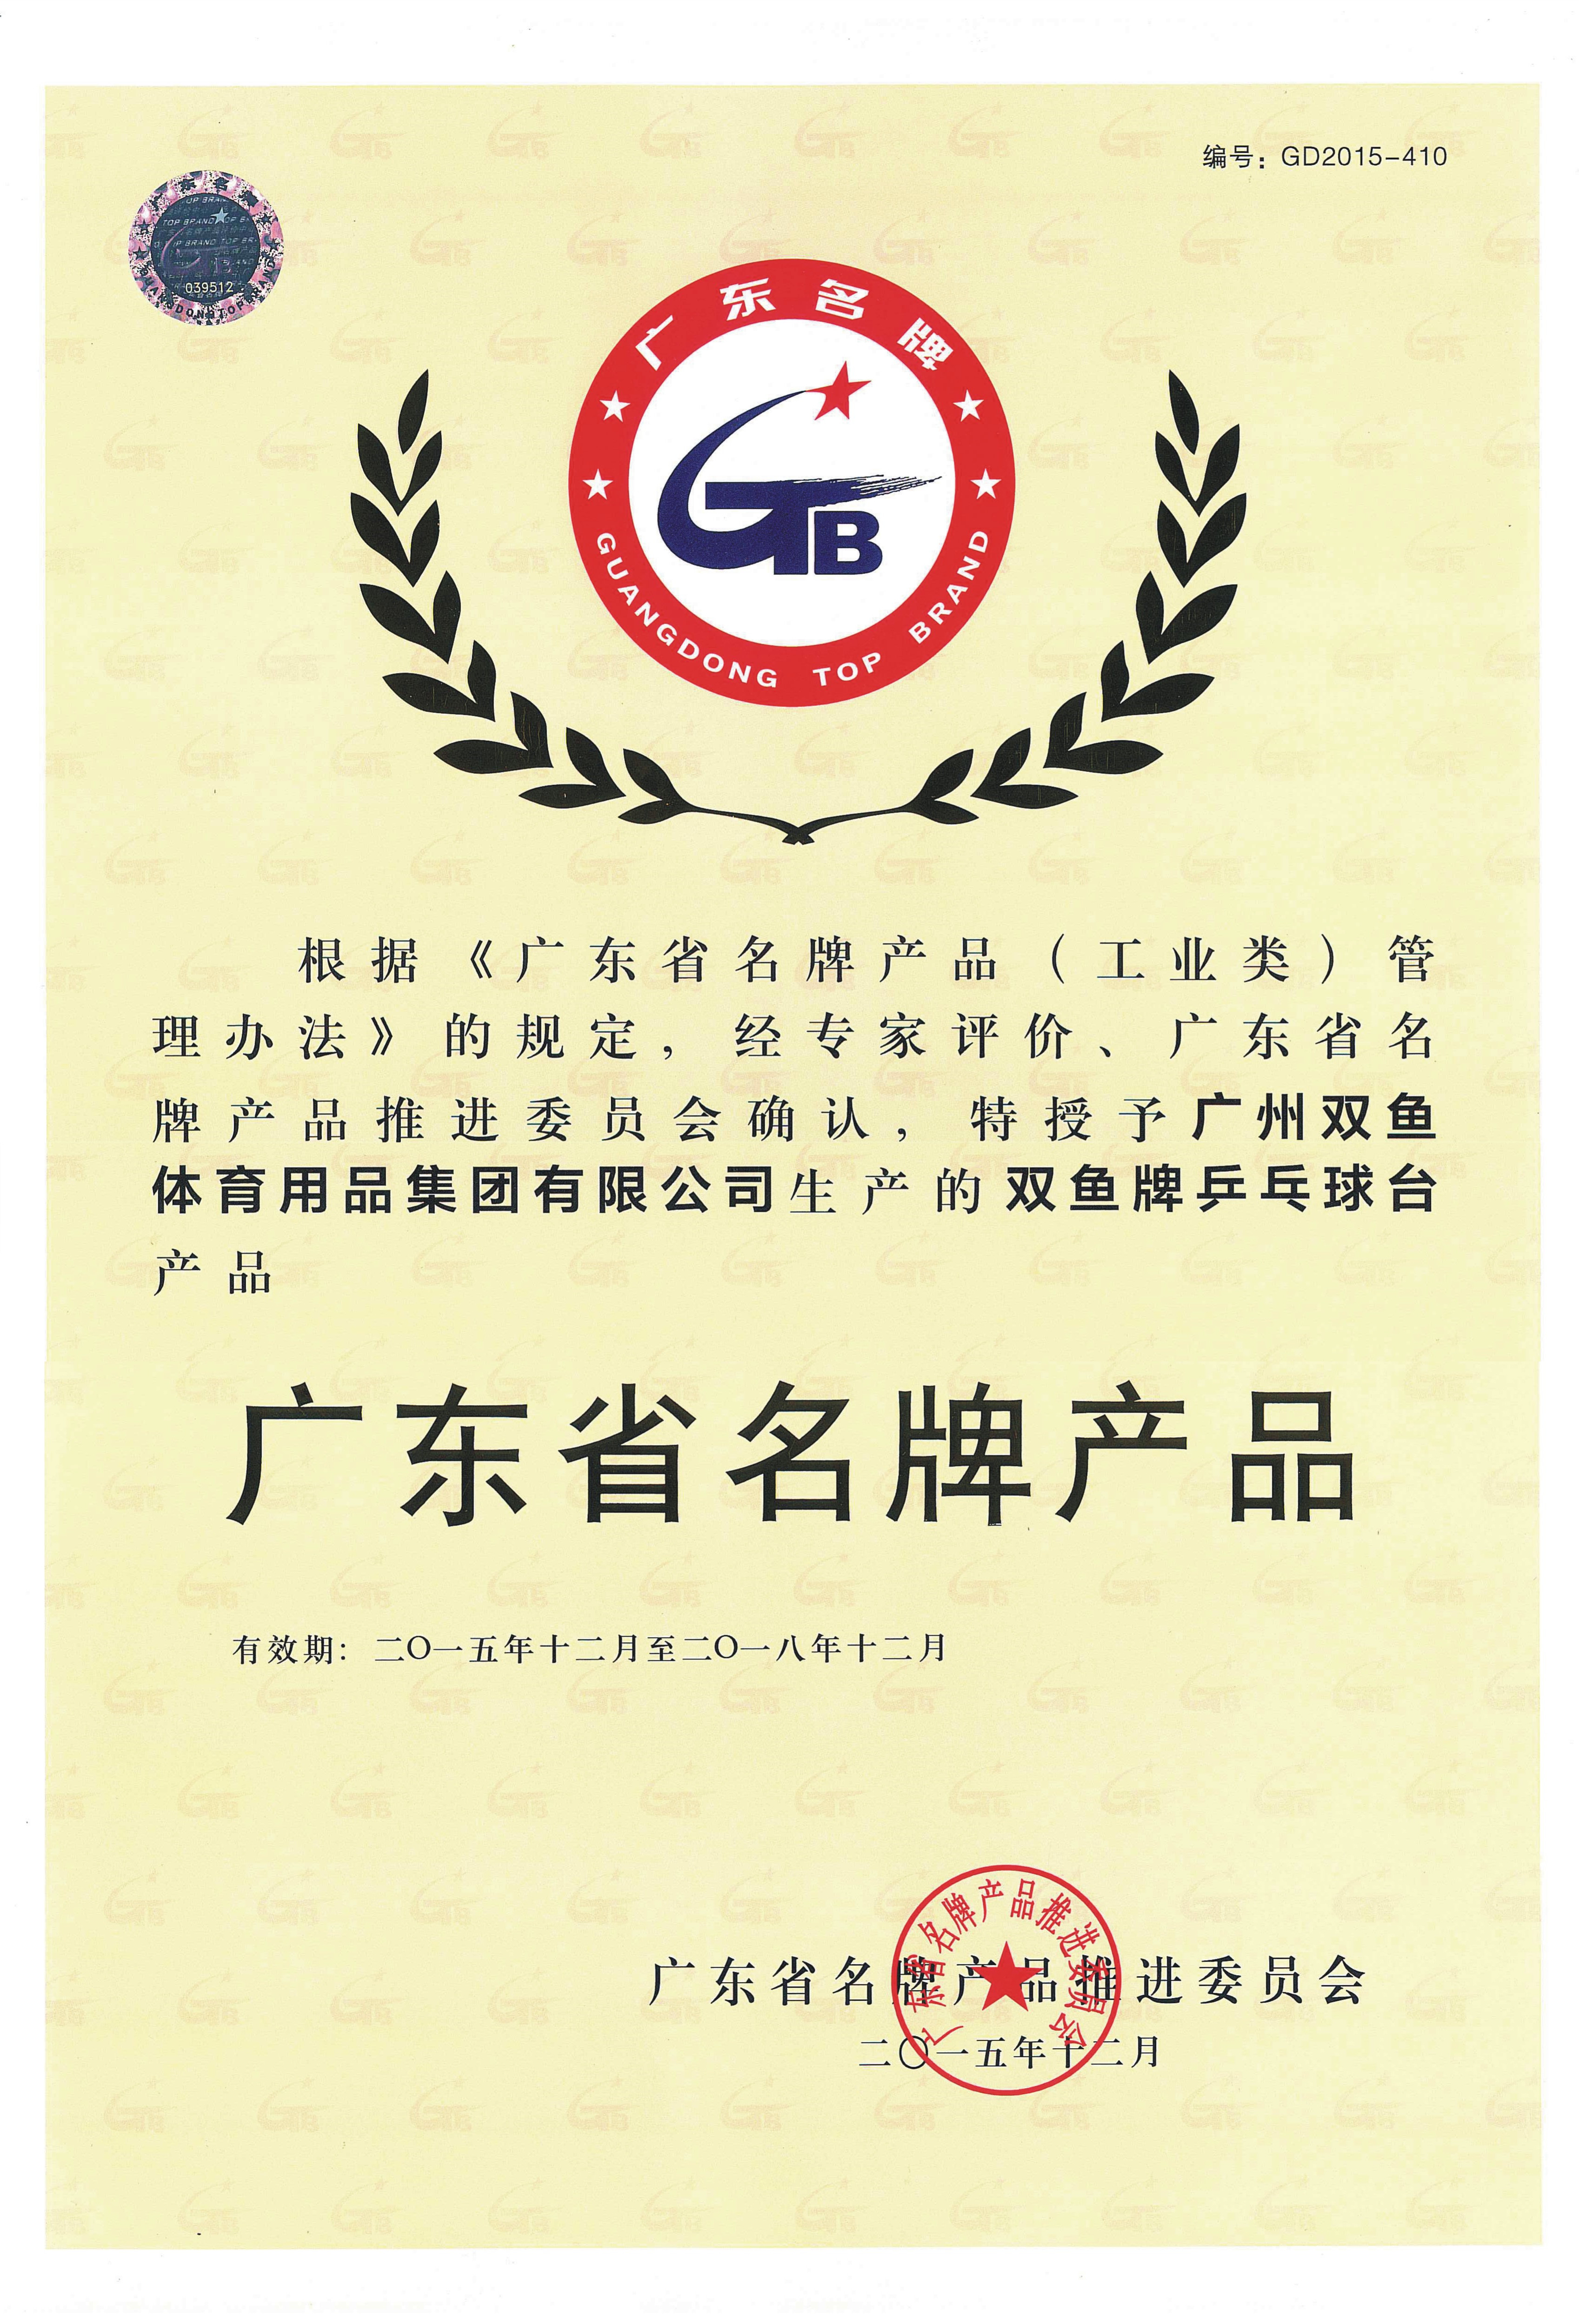 Double Fish Brand obtained Guangdong Famous Brand